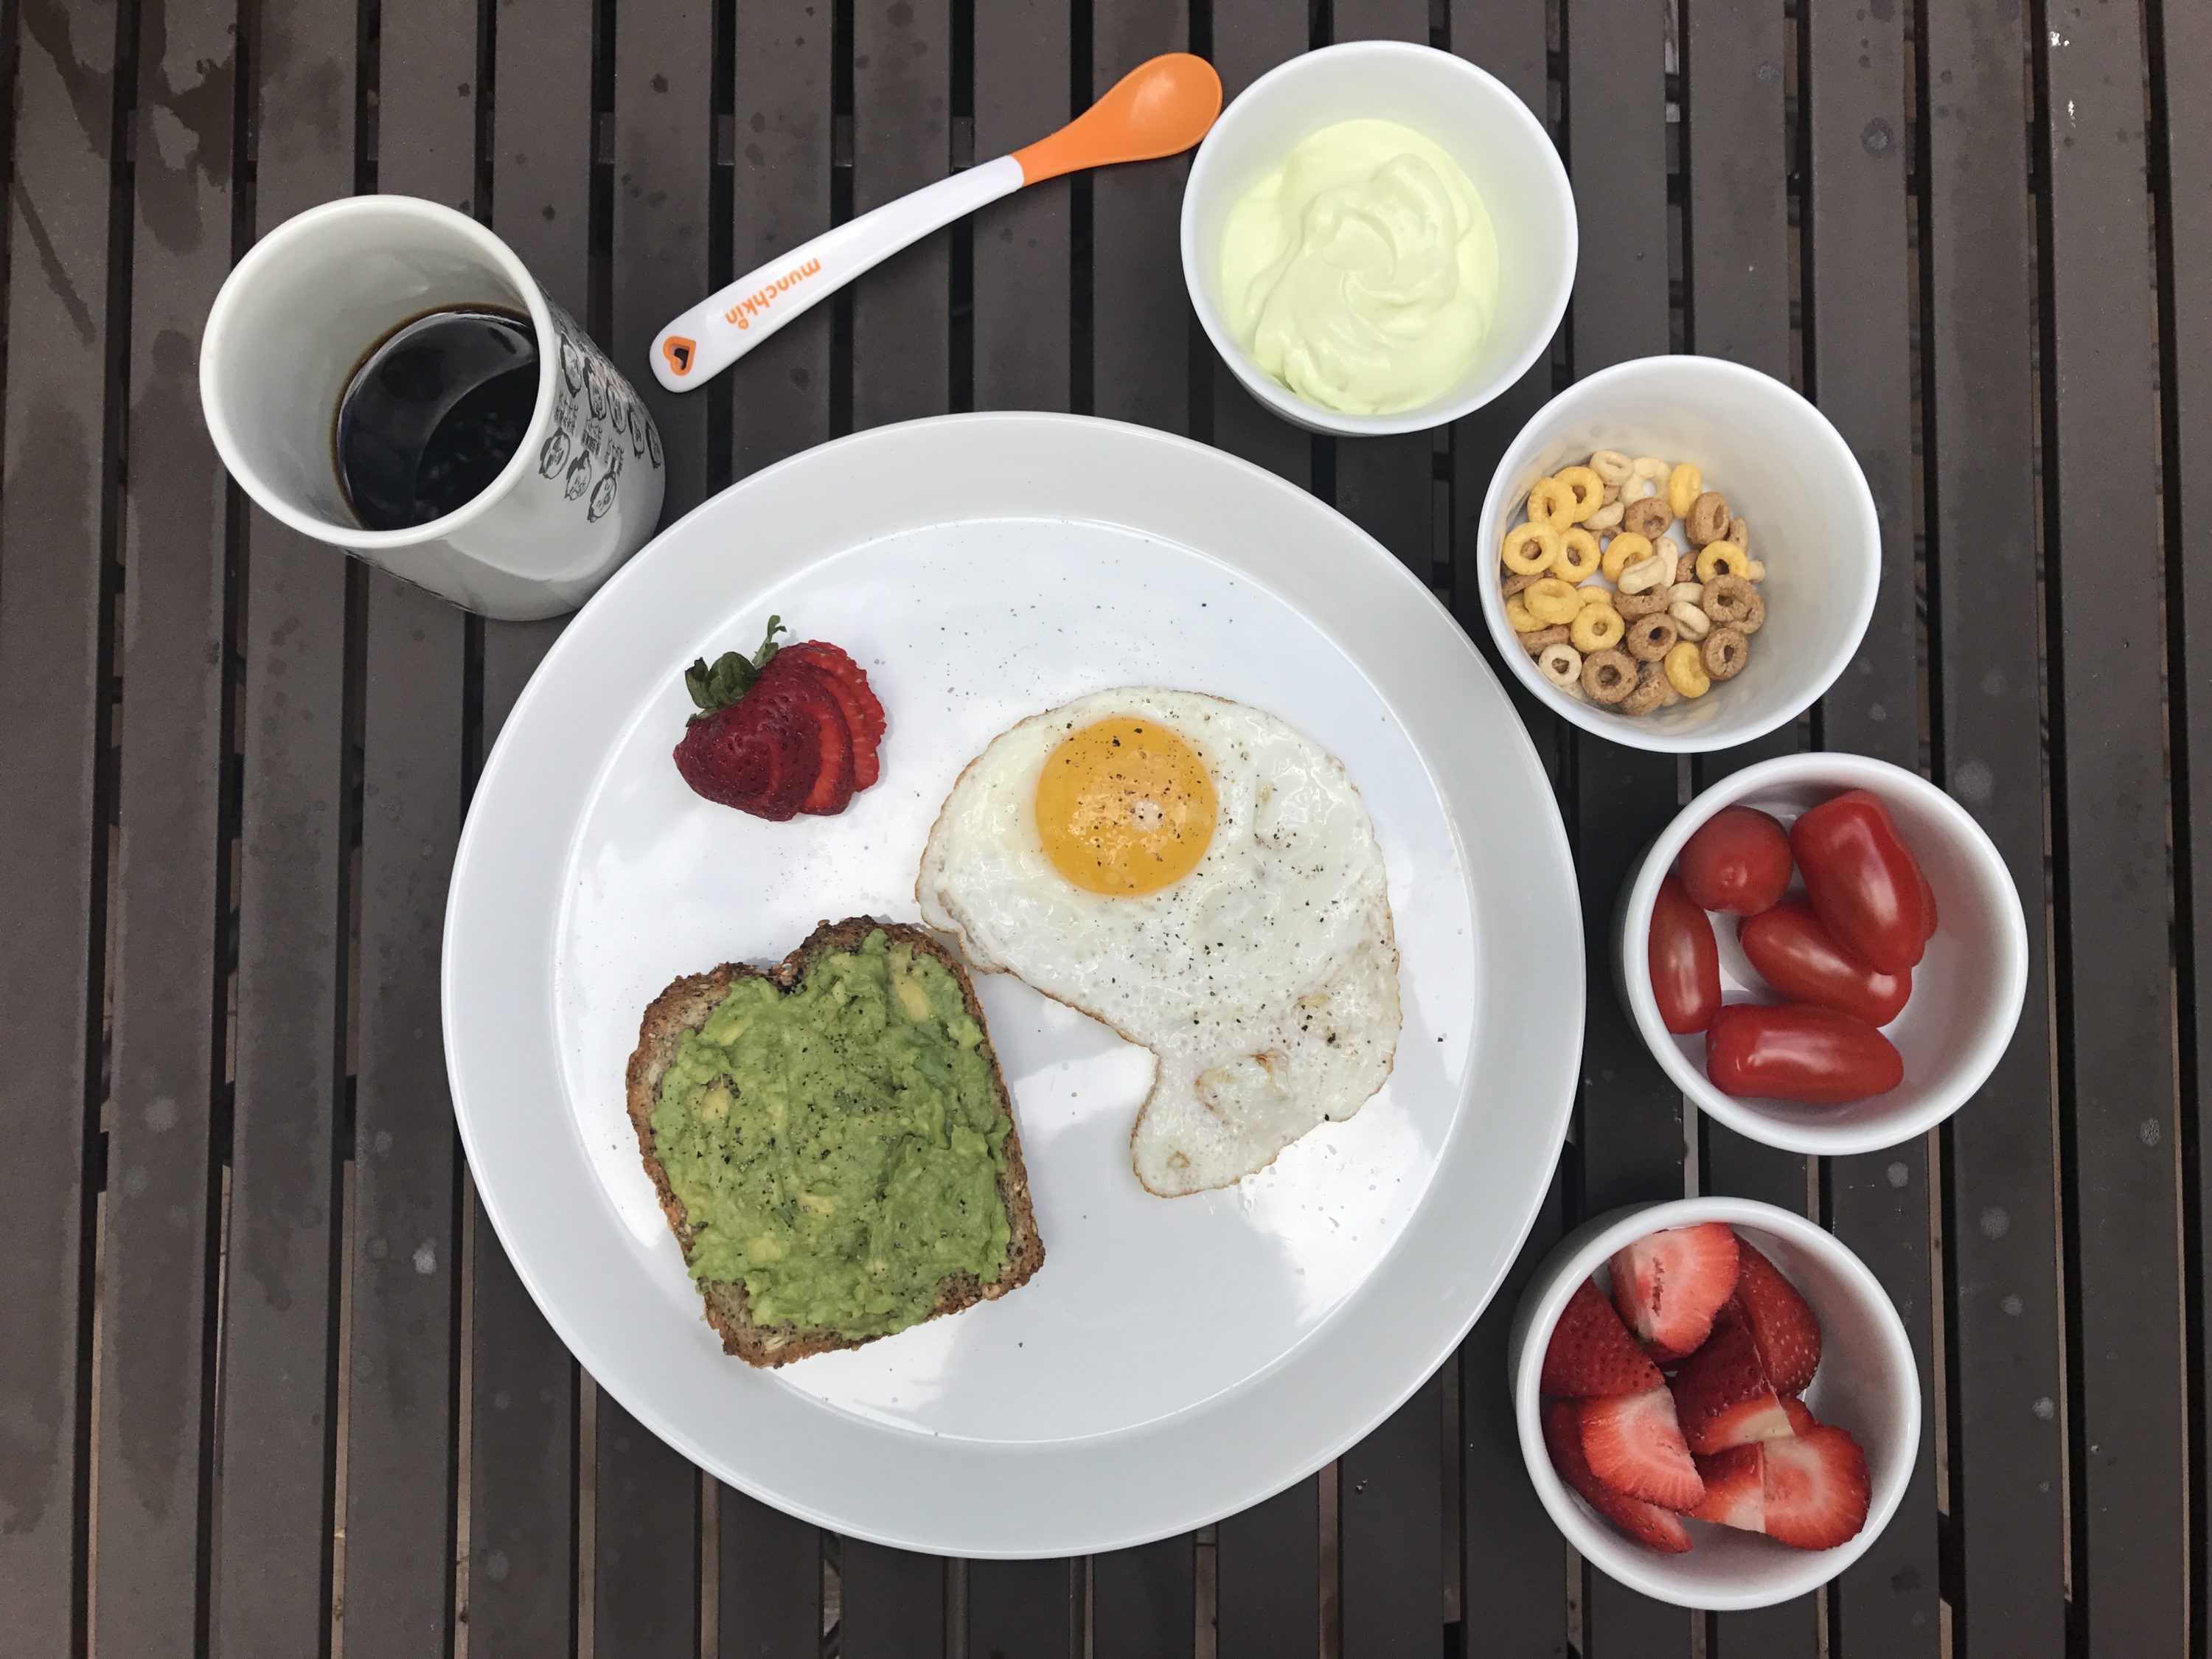 Avocado toast chicken meatballs and lasagna what a nutritionist breakfast forumfinder Image collections